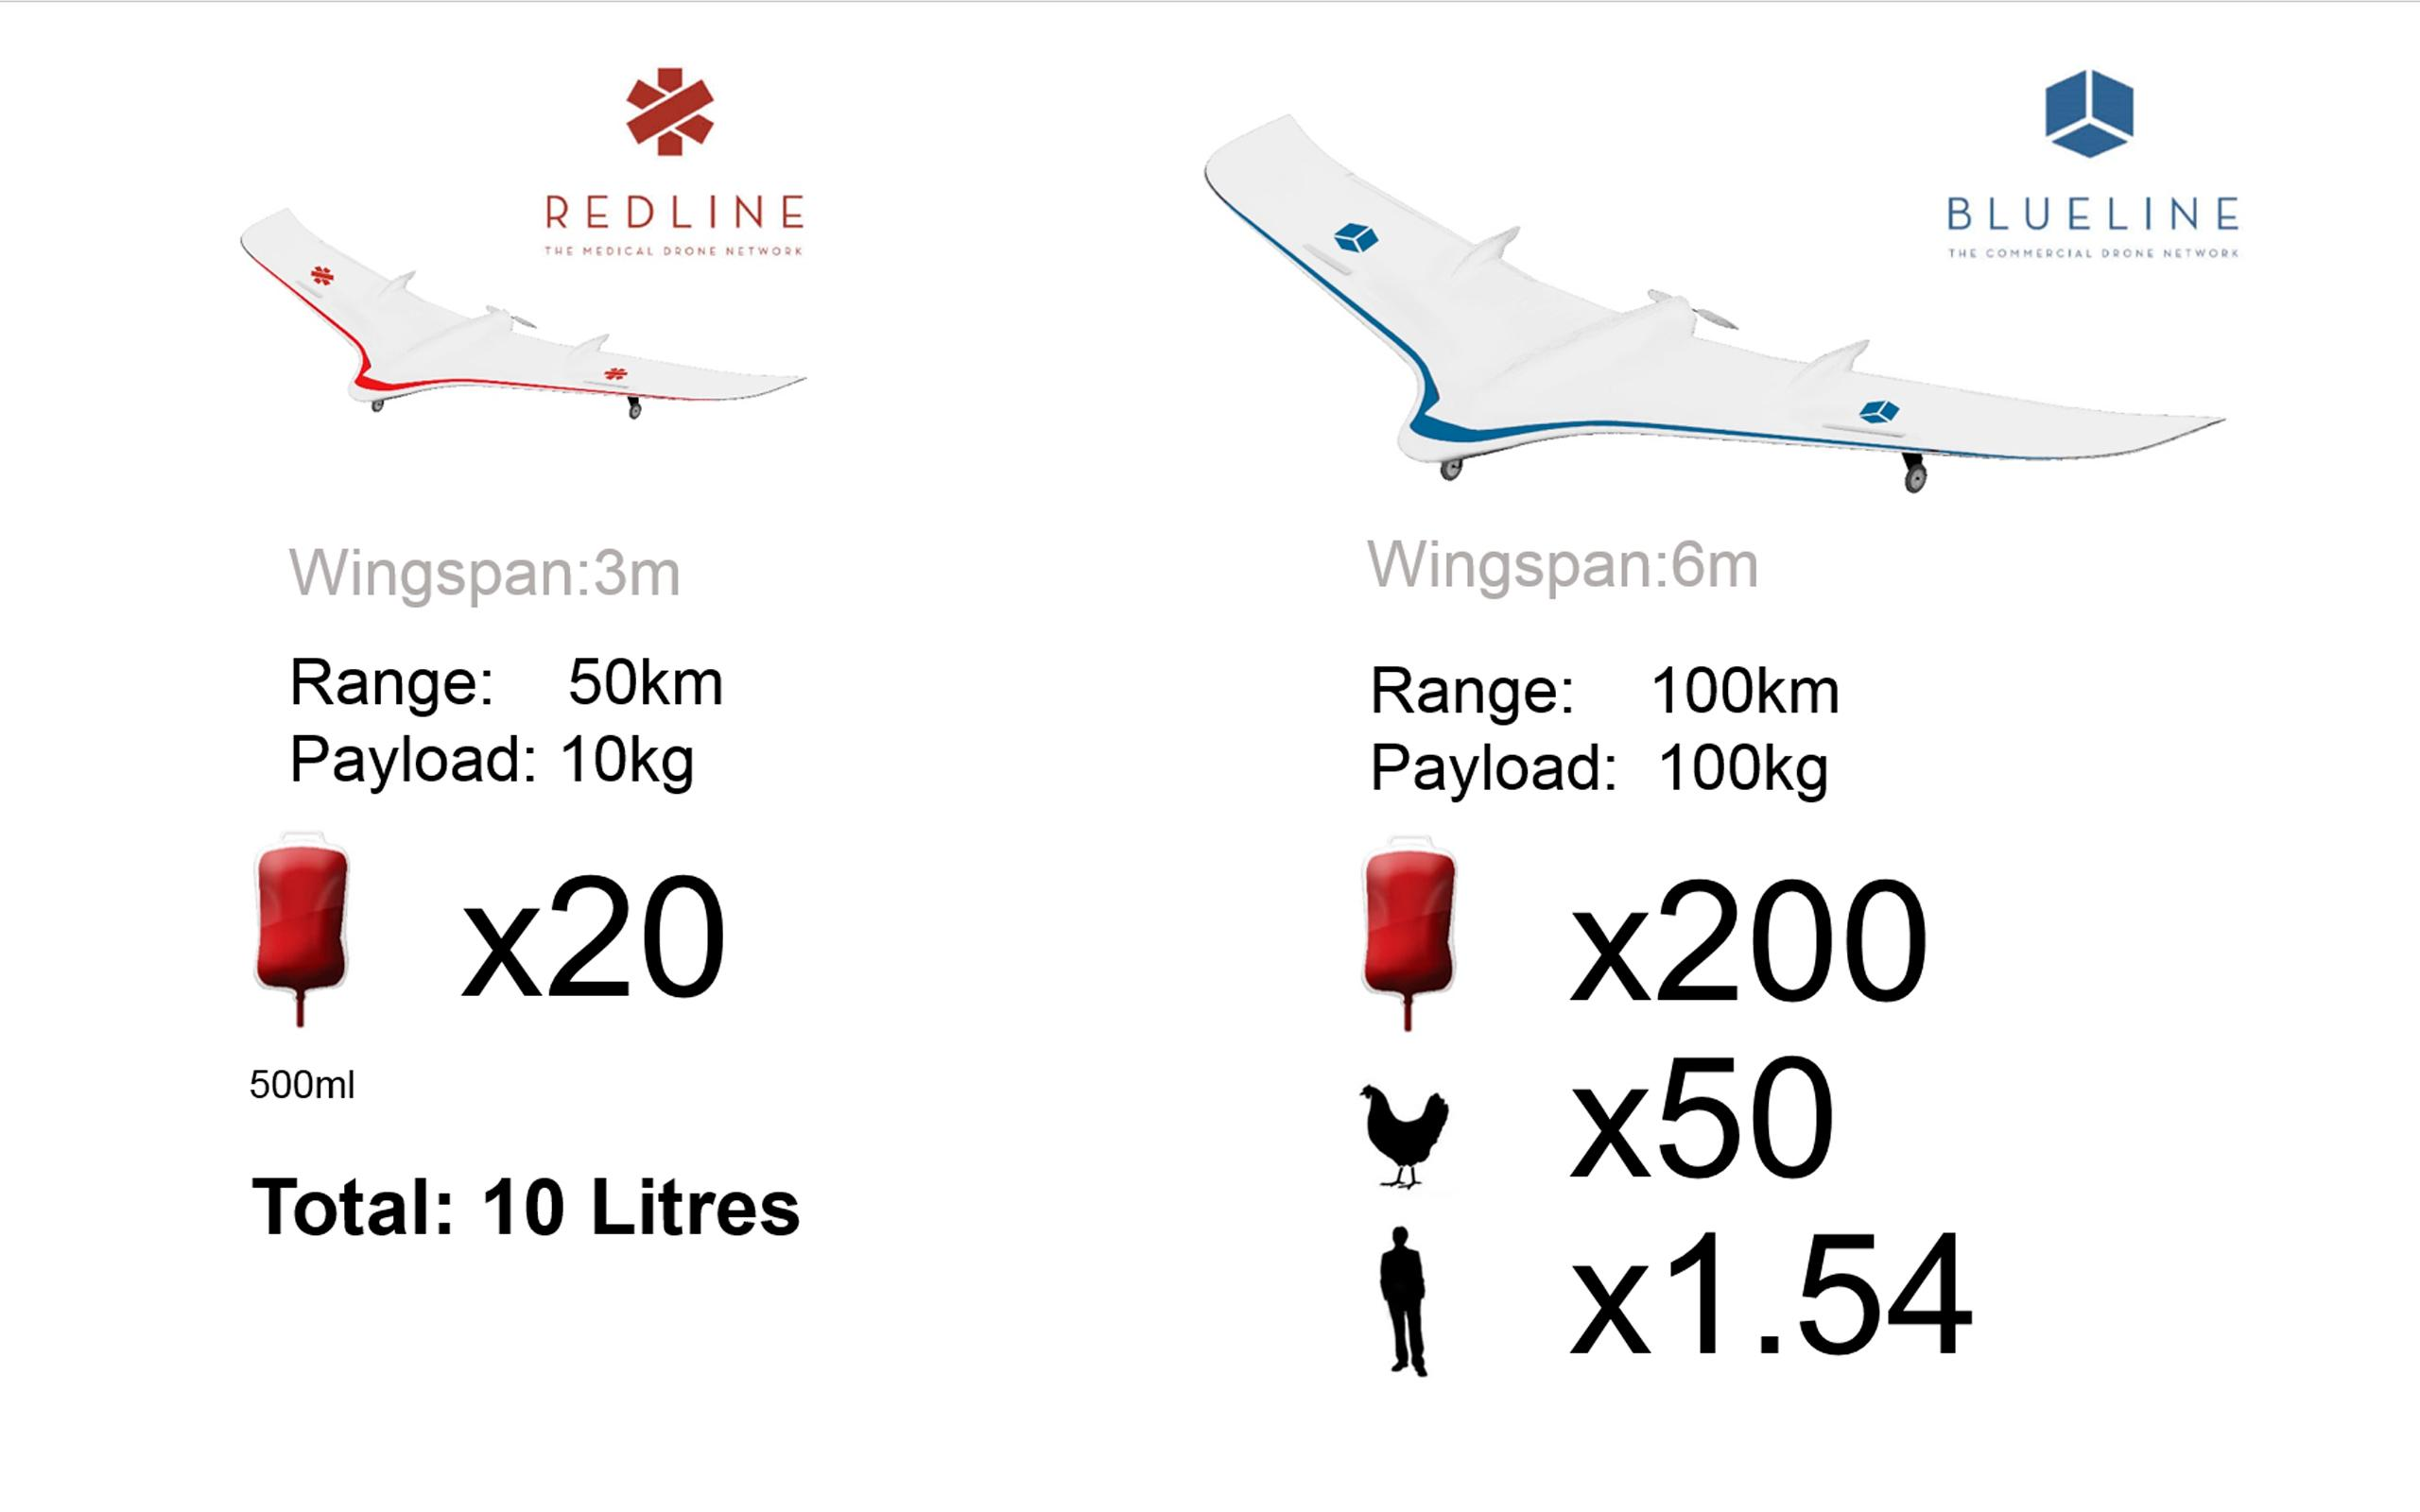 The Red Line and Blue Line drones will be designed to carry medical supplies, and someday maybe even people or animals